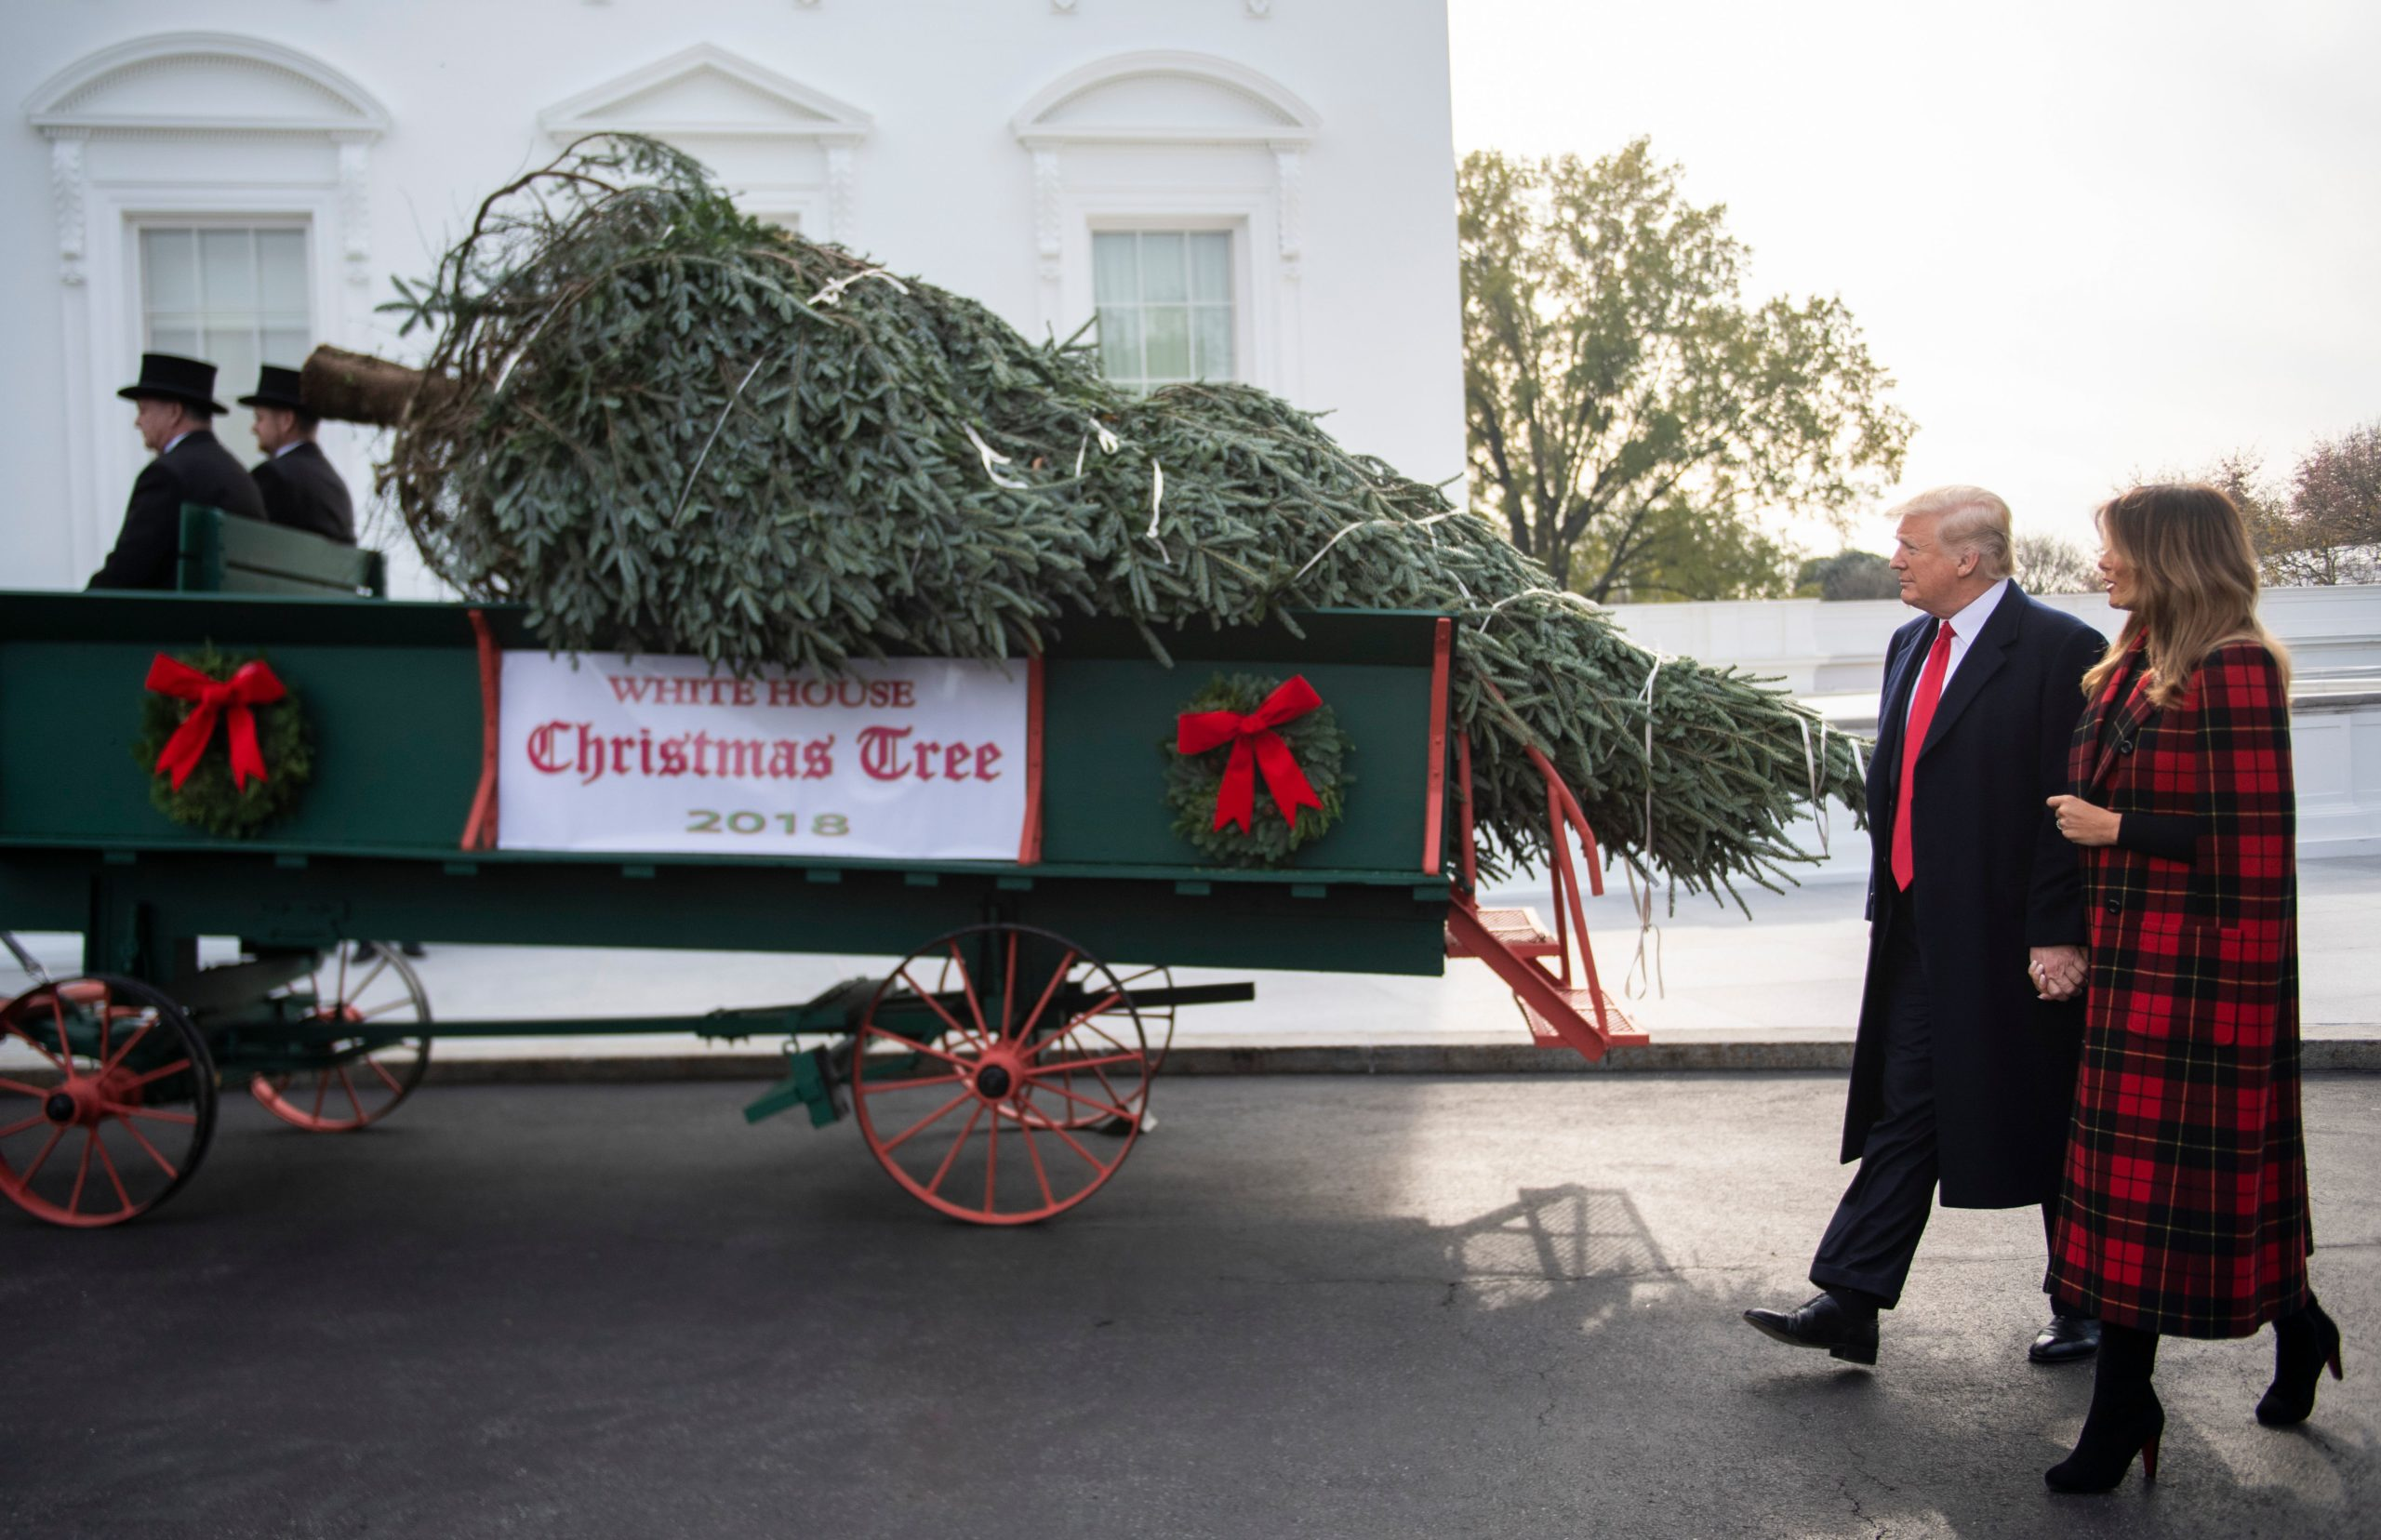 US President Donald Trump and First Lady Melania Trump participate in the White House Christmas Tree delivery at the White House in Washington, DC, on November 19, 2018. (Jim WATSON / AFP) (Photo credit should read JIM WATSON/AFP via Getty Images)